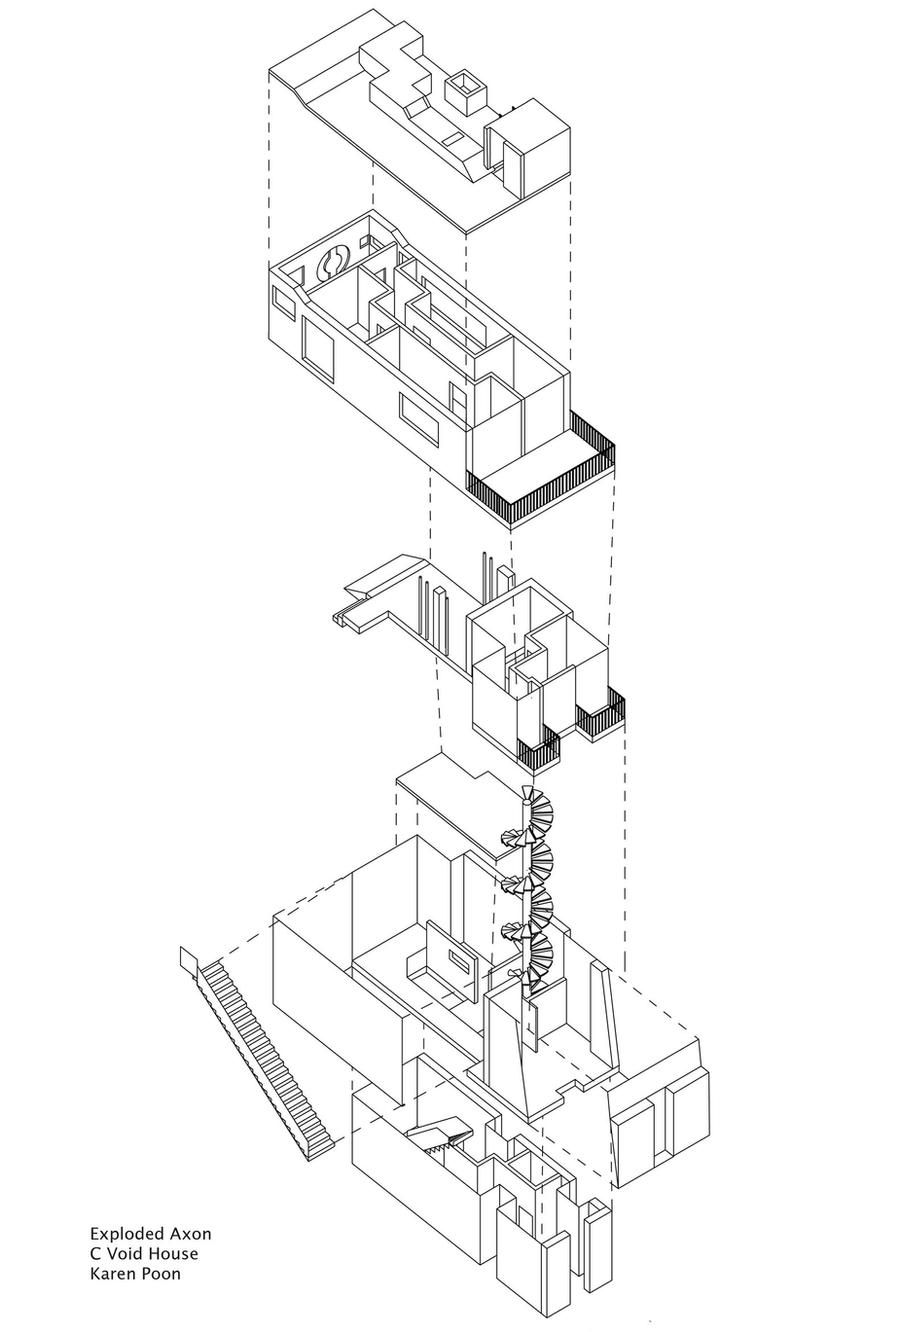 exploded axonometric diagram by whyming on deviantart